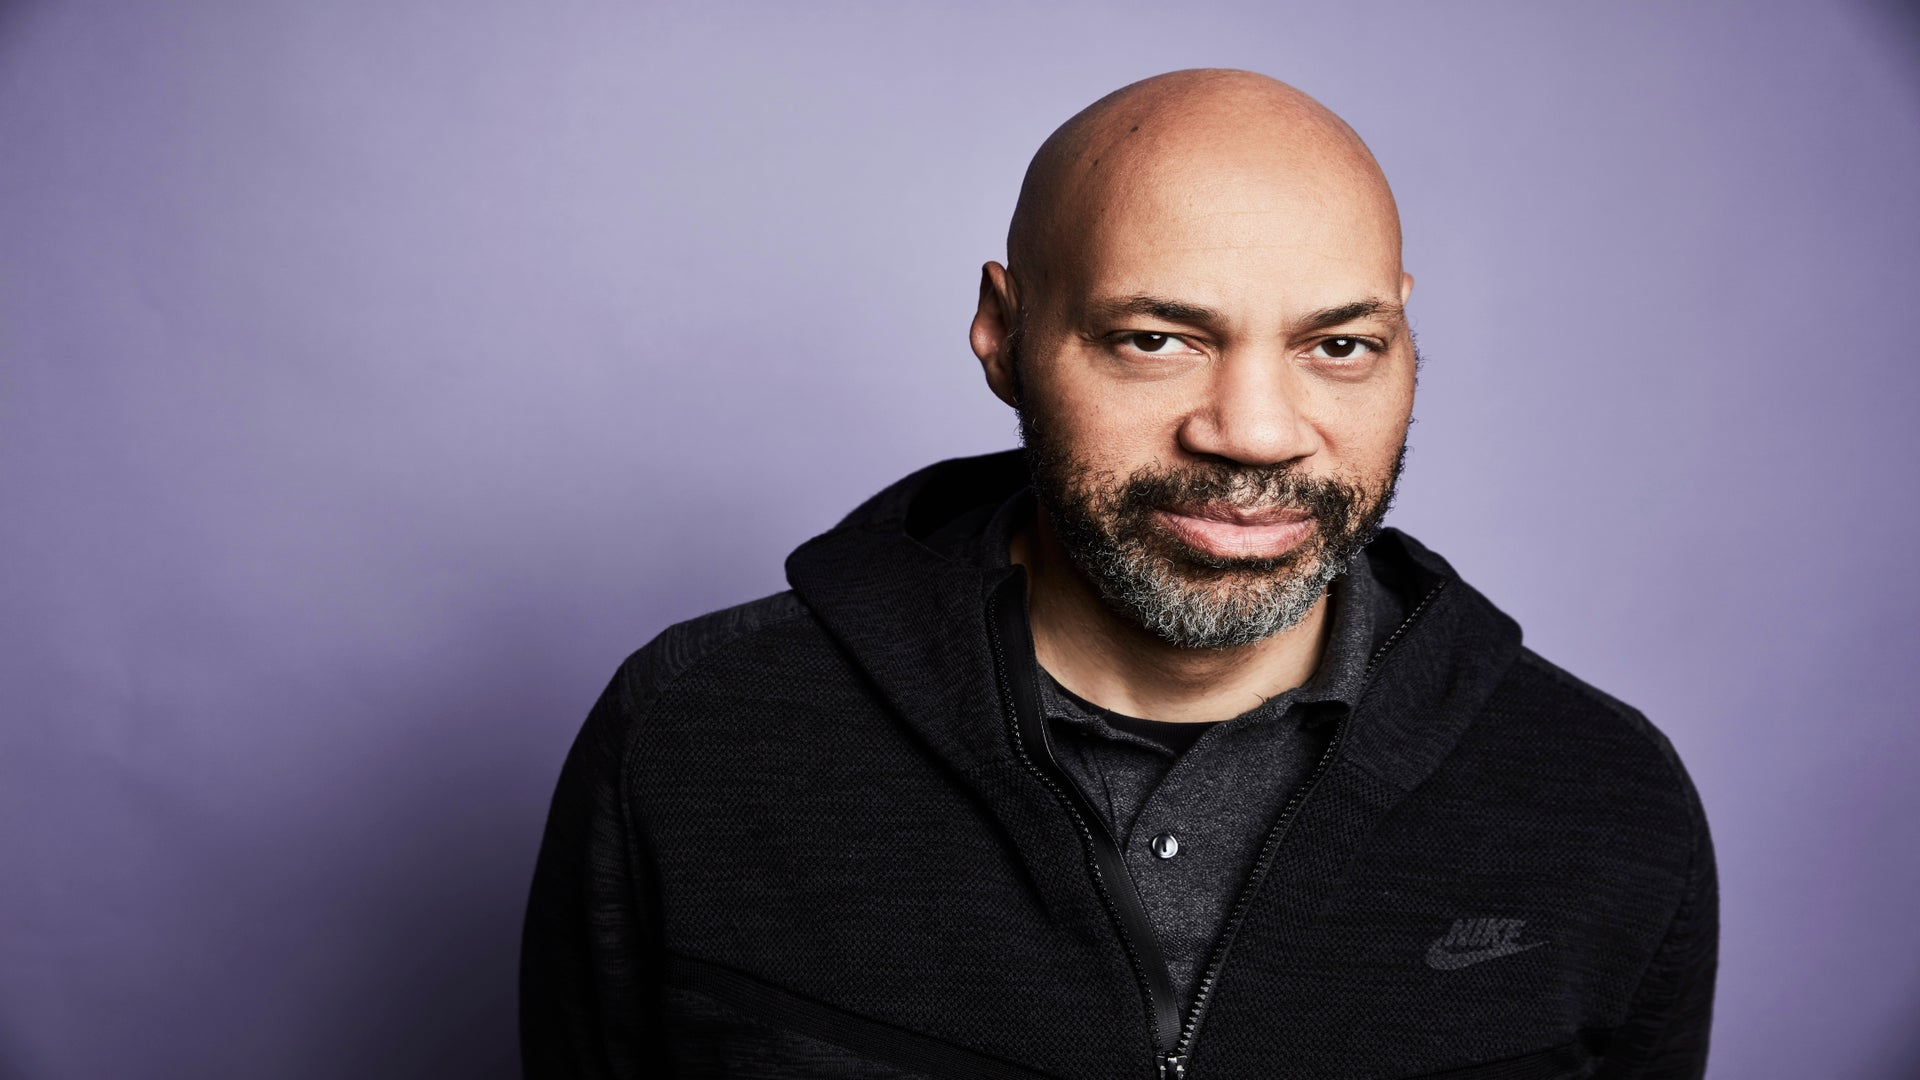 'Guerilla' Director John Ridley Says Black Women Are Erased From His Series Because He's 'In A Mixed Race Relationship'